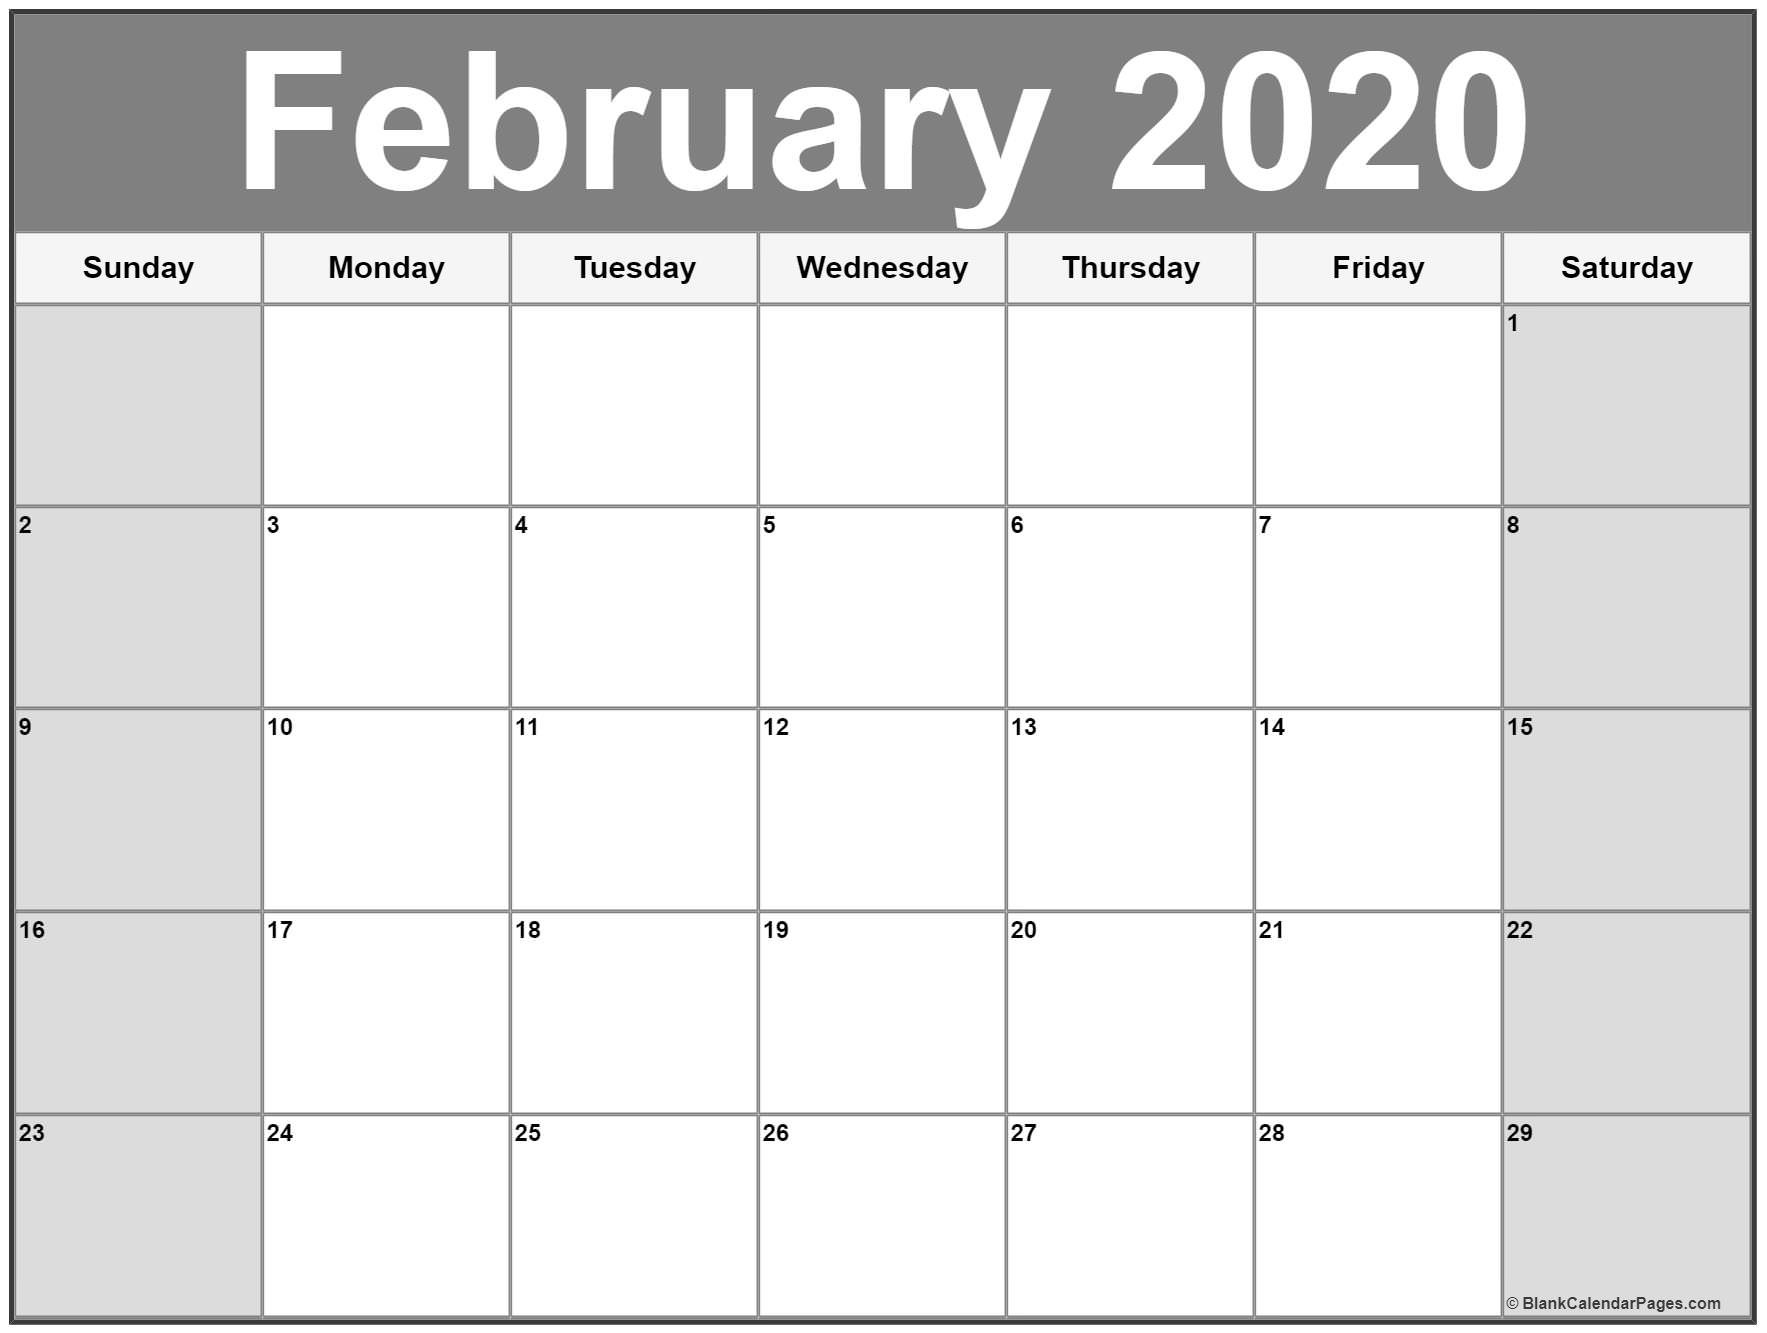 Free Monthly February Calendar 2020 Printable Template inside Monthly Calendar With Time Slots 2020